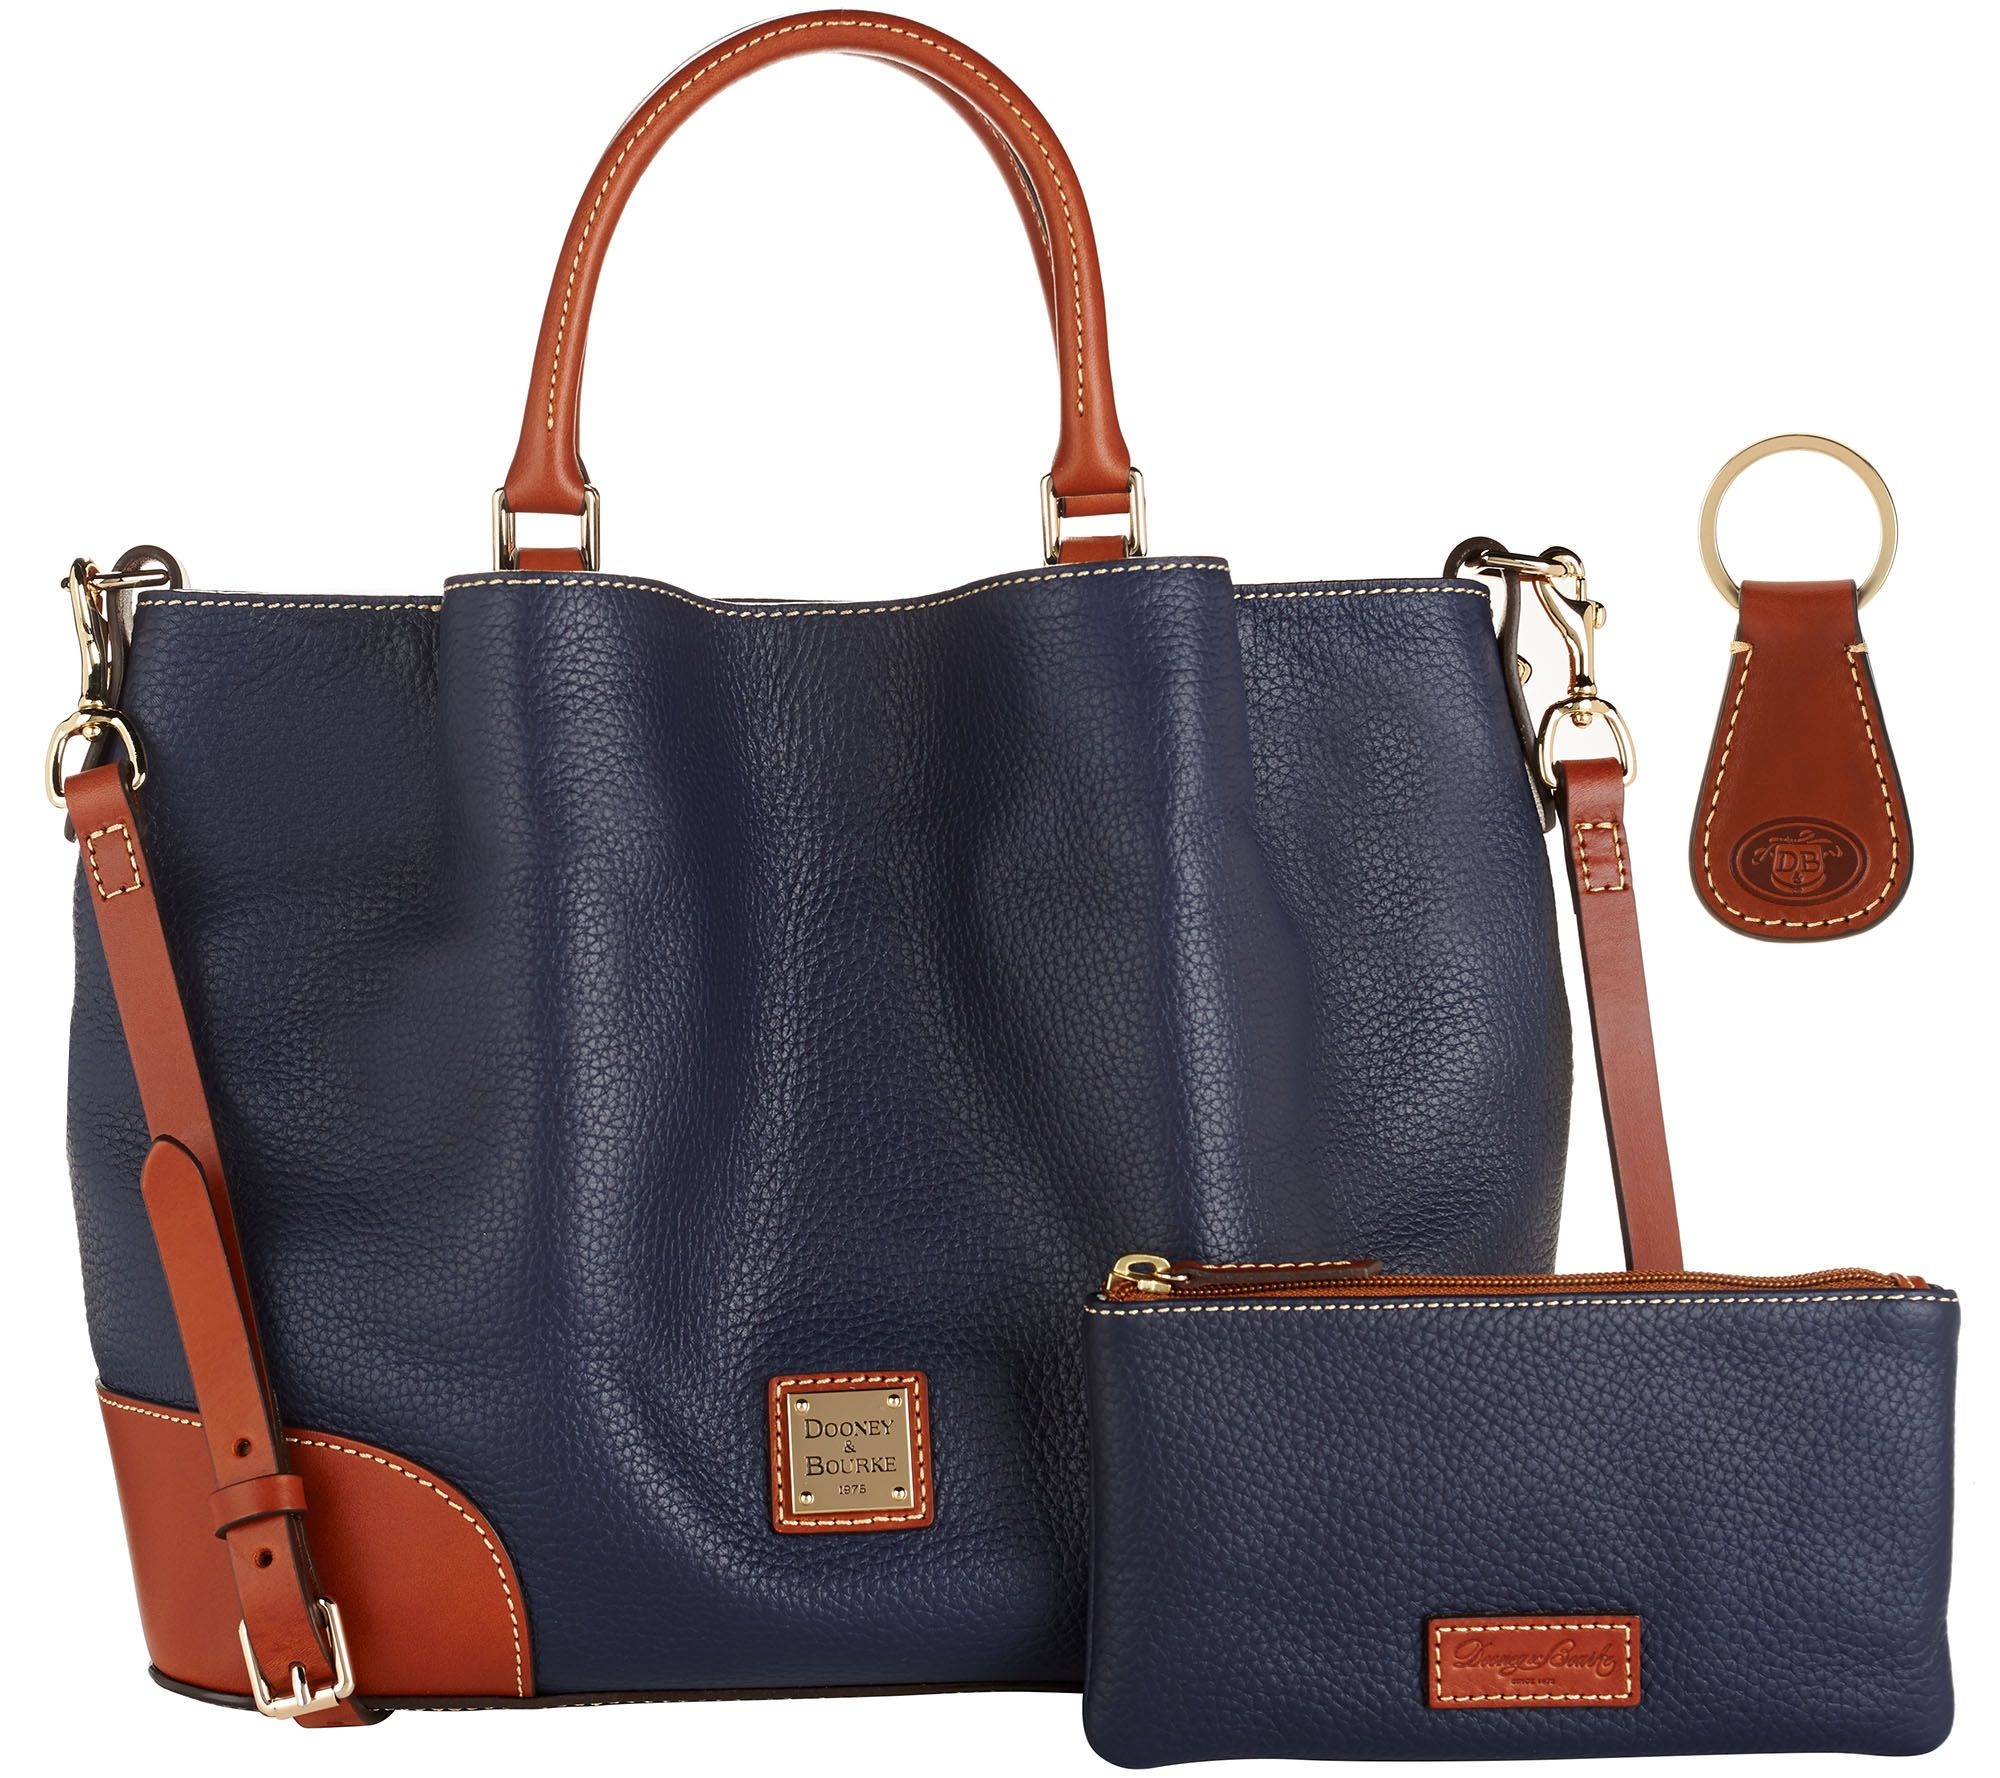 6430d3d8a438 Dooney   Bourke Pebble Leather Brenna Satchel with Accessories - Page 1 —  QVC.com